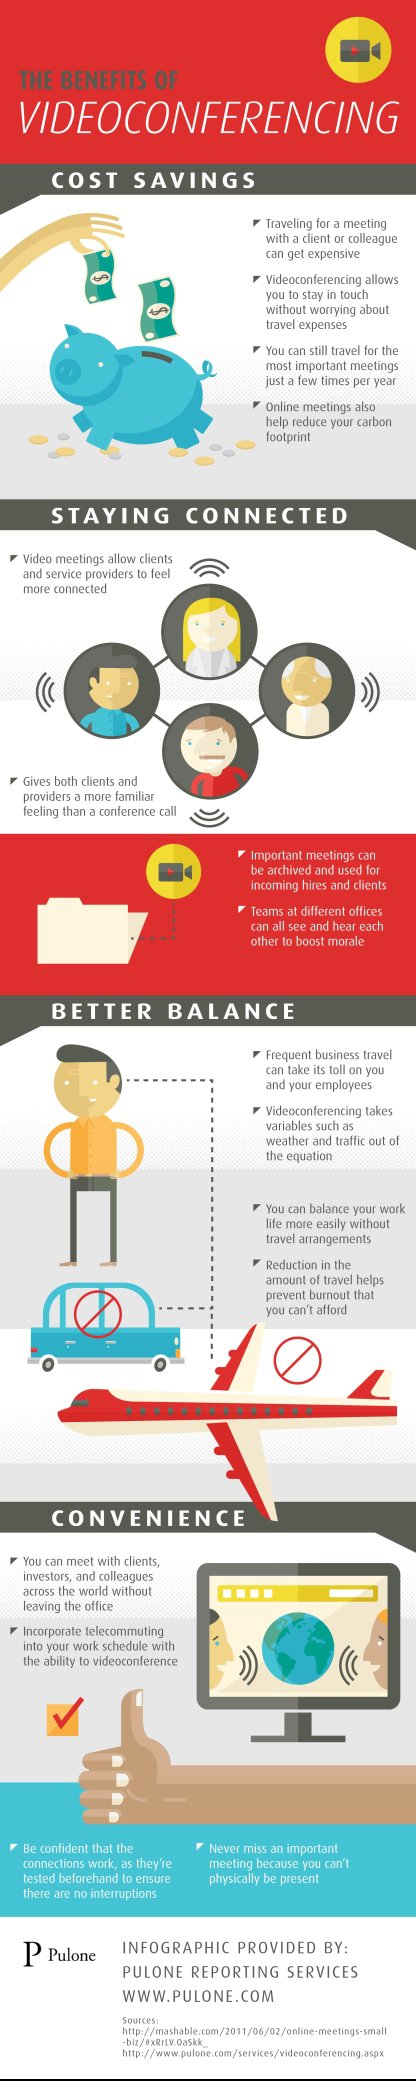 Benefits of video conferencing in San Jose, California